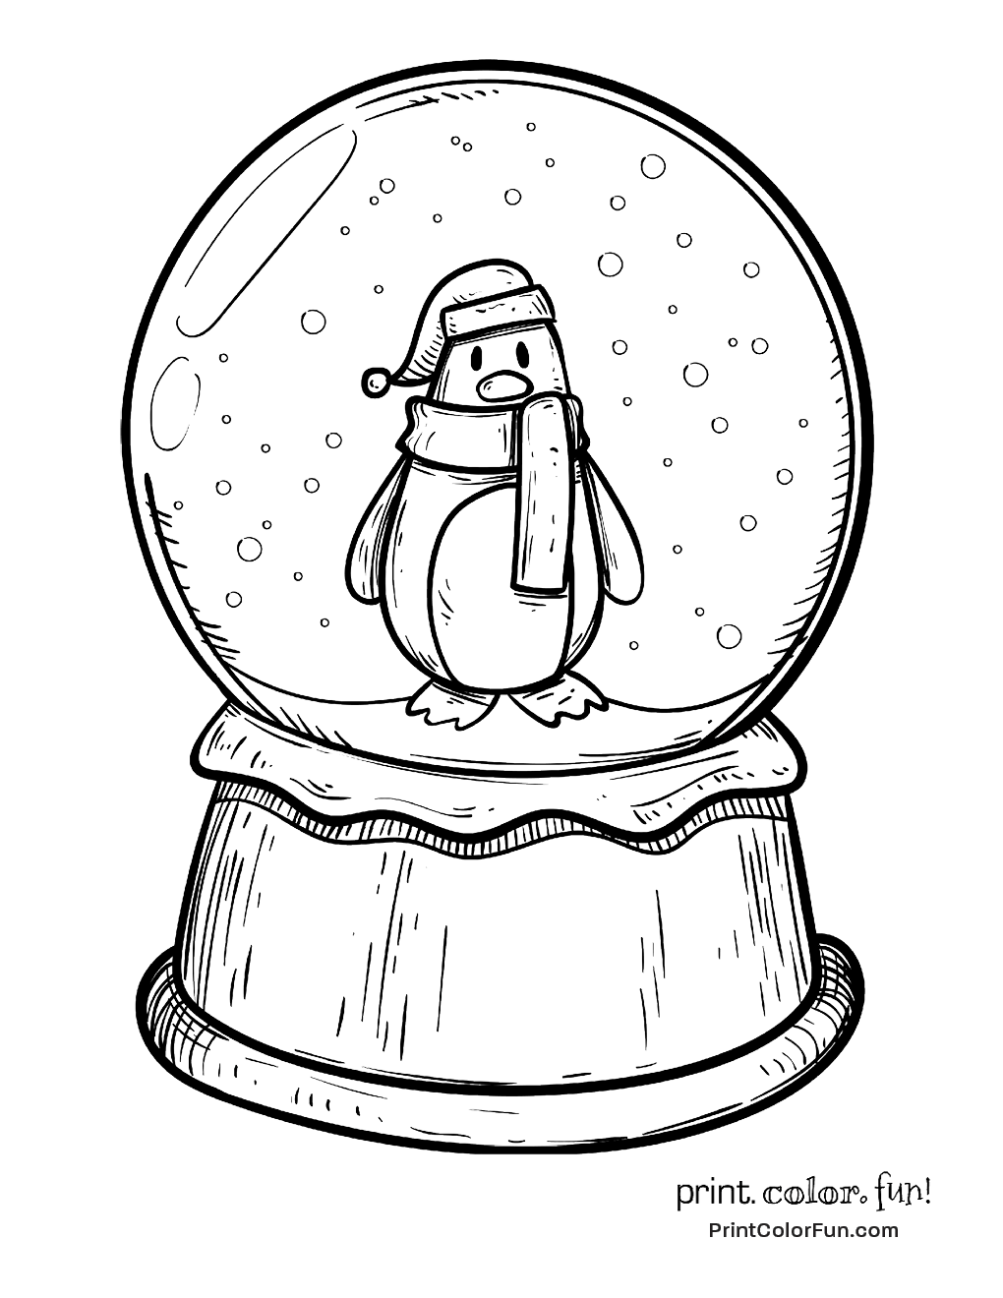 Blank gingerbread man coloring page Print. Color. Fun